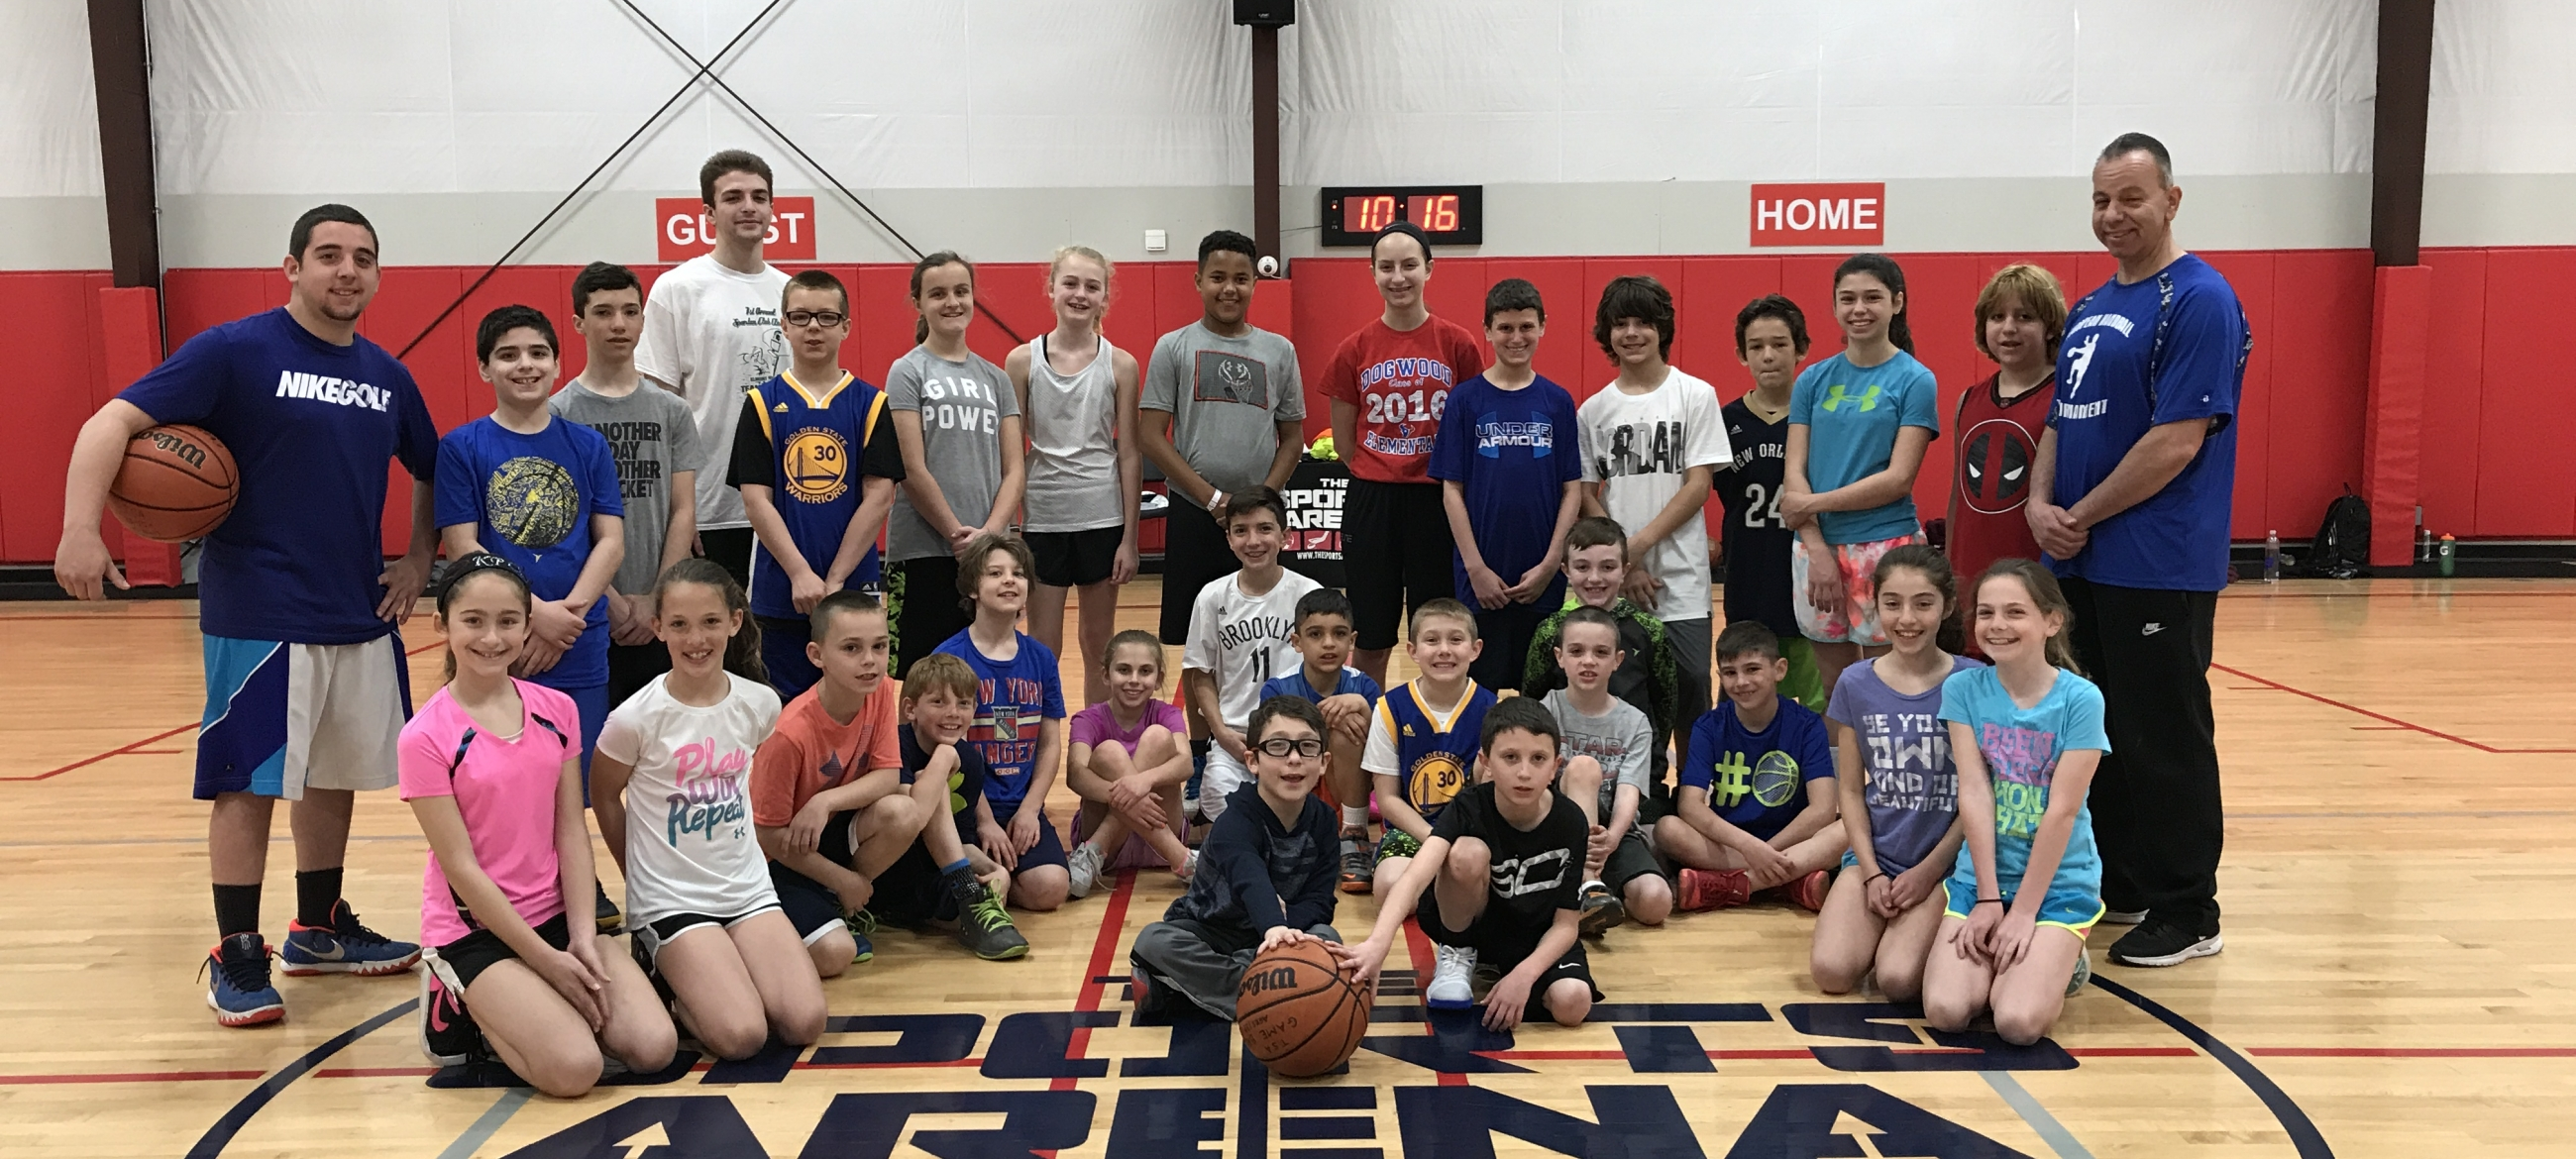 Basketball Camp Long Island Indoor Sports Facility The